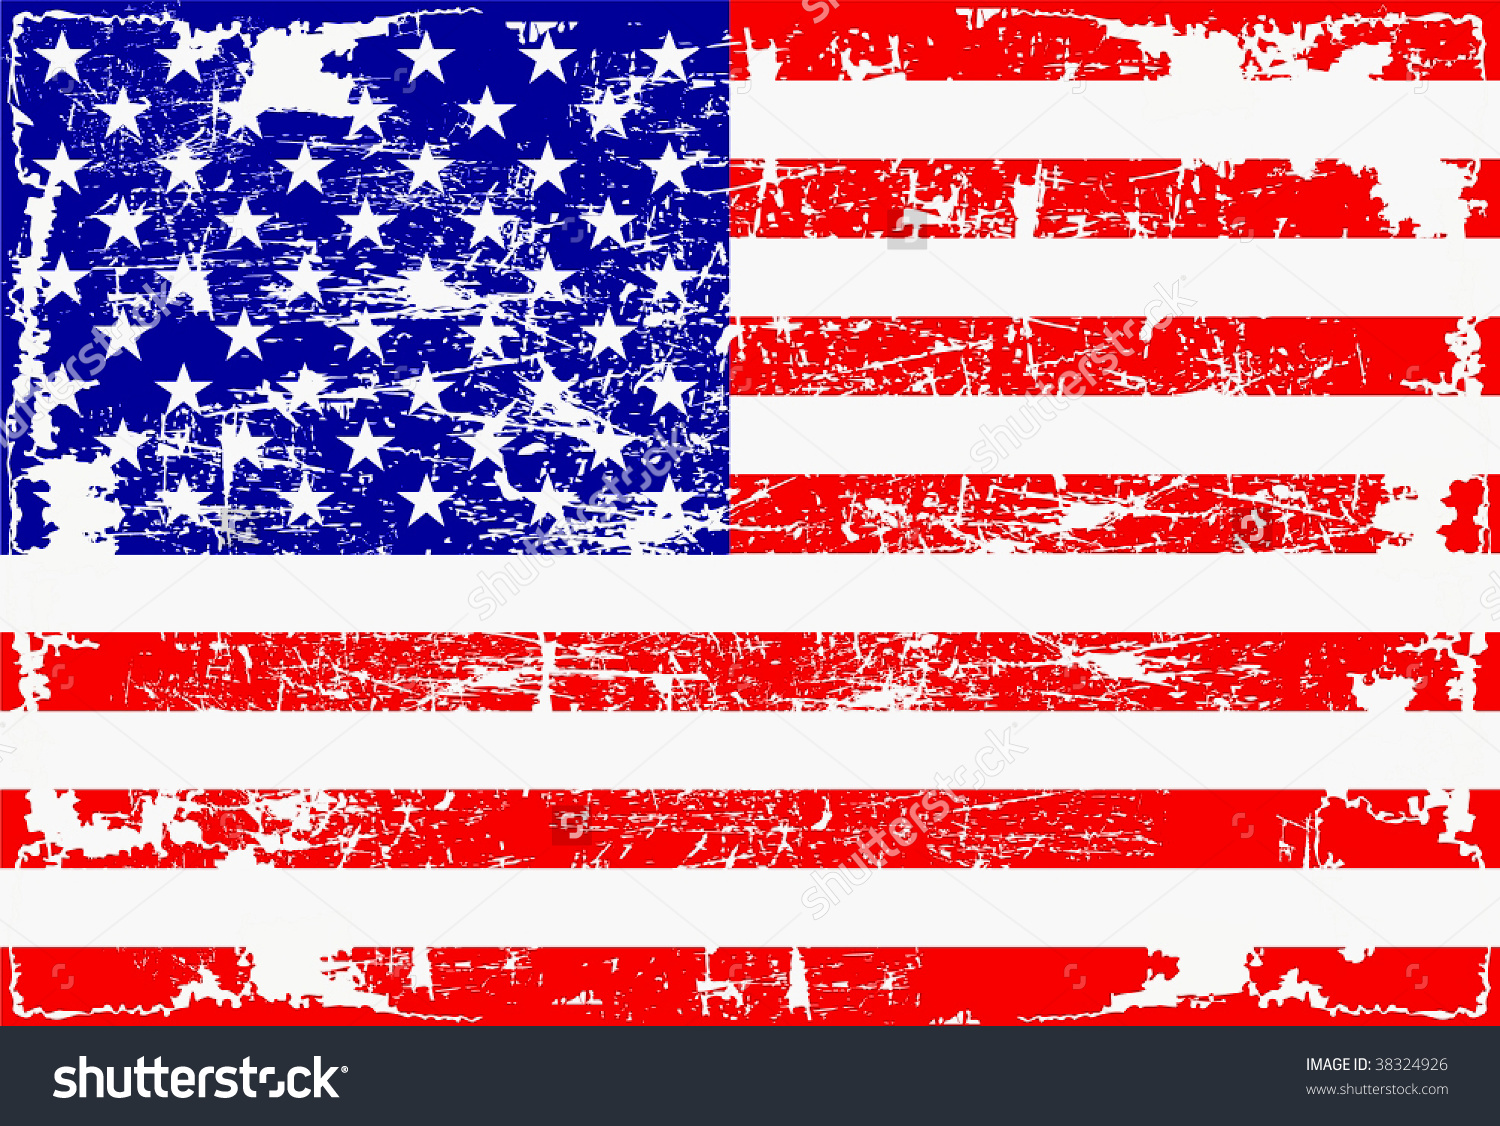 United states distressed flag clipart clip art library stock United states distressed flag clipart - ClipartFest clip art library stock